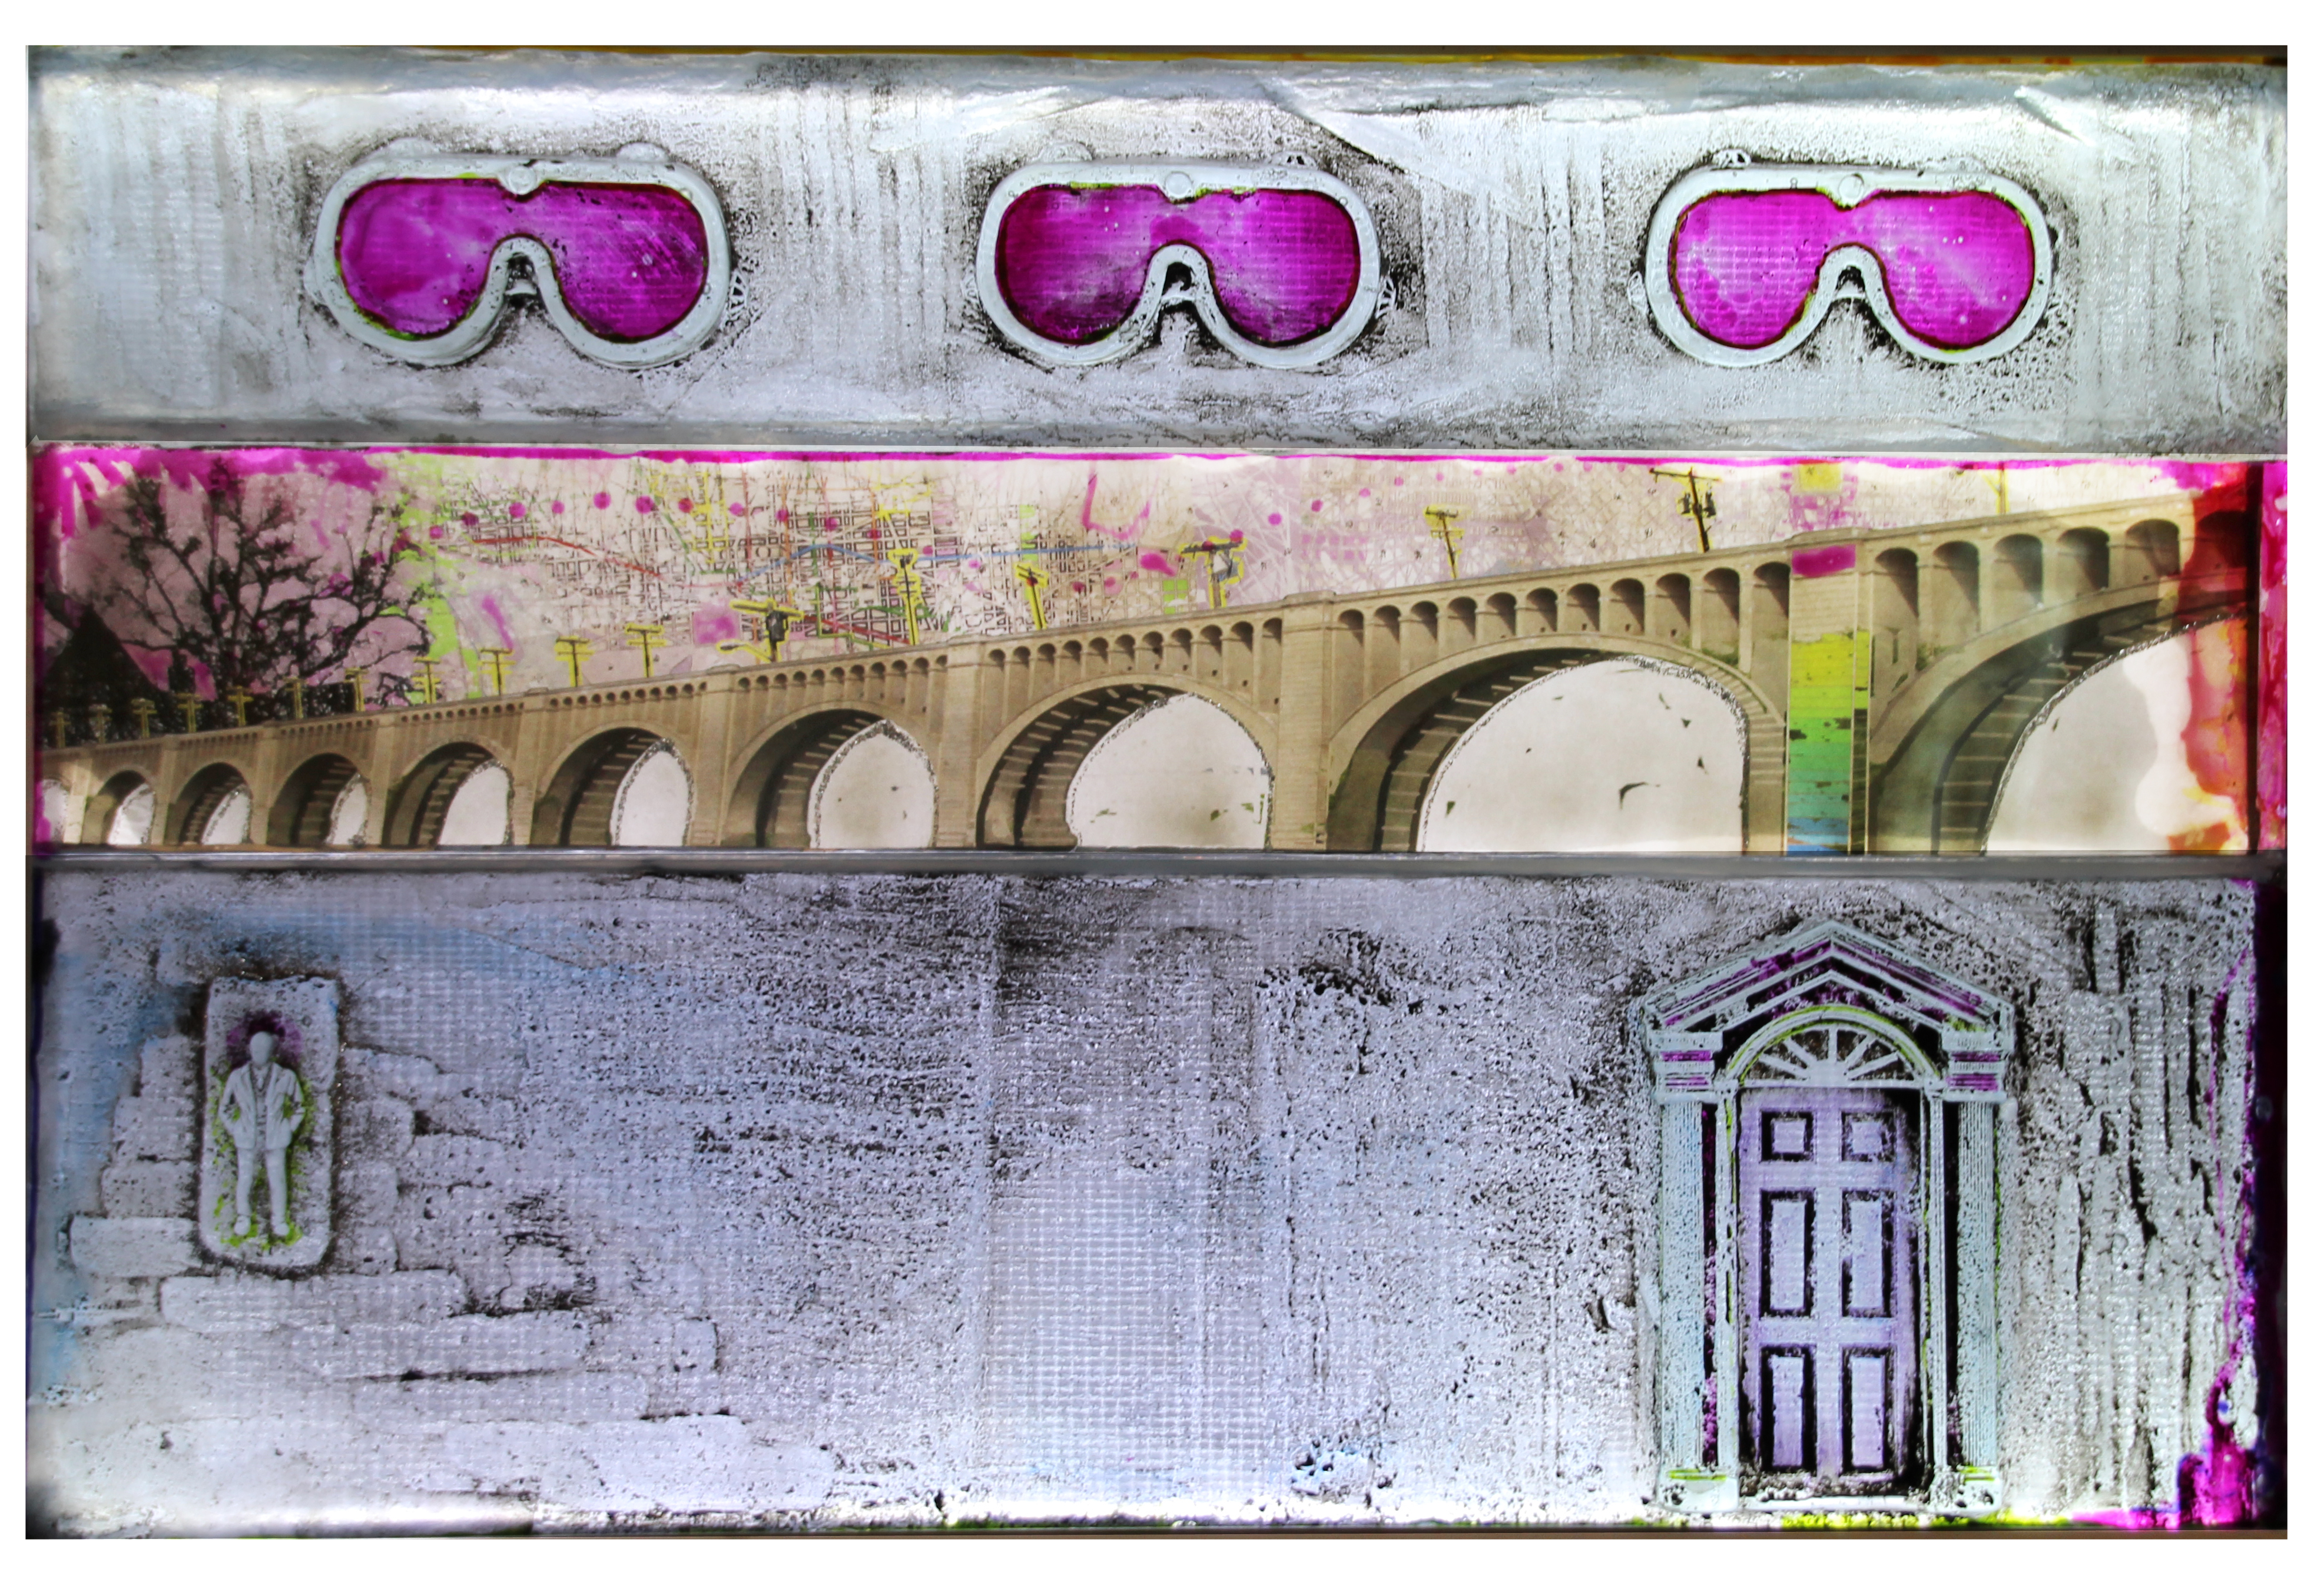 Wall relief glass sculpture with images of goggles, a bridge, a figure and a door.